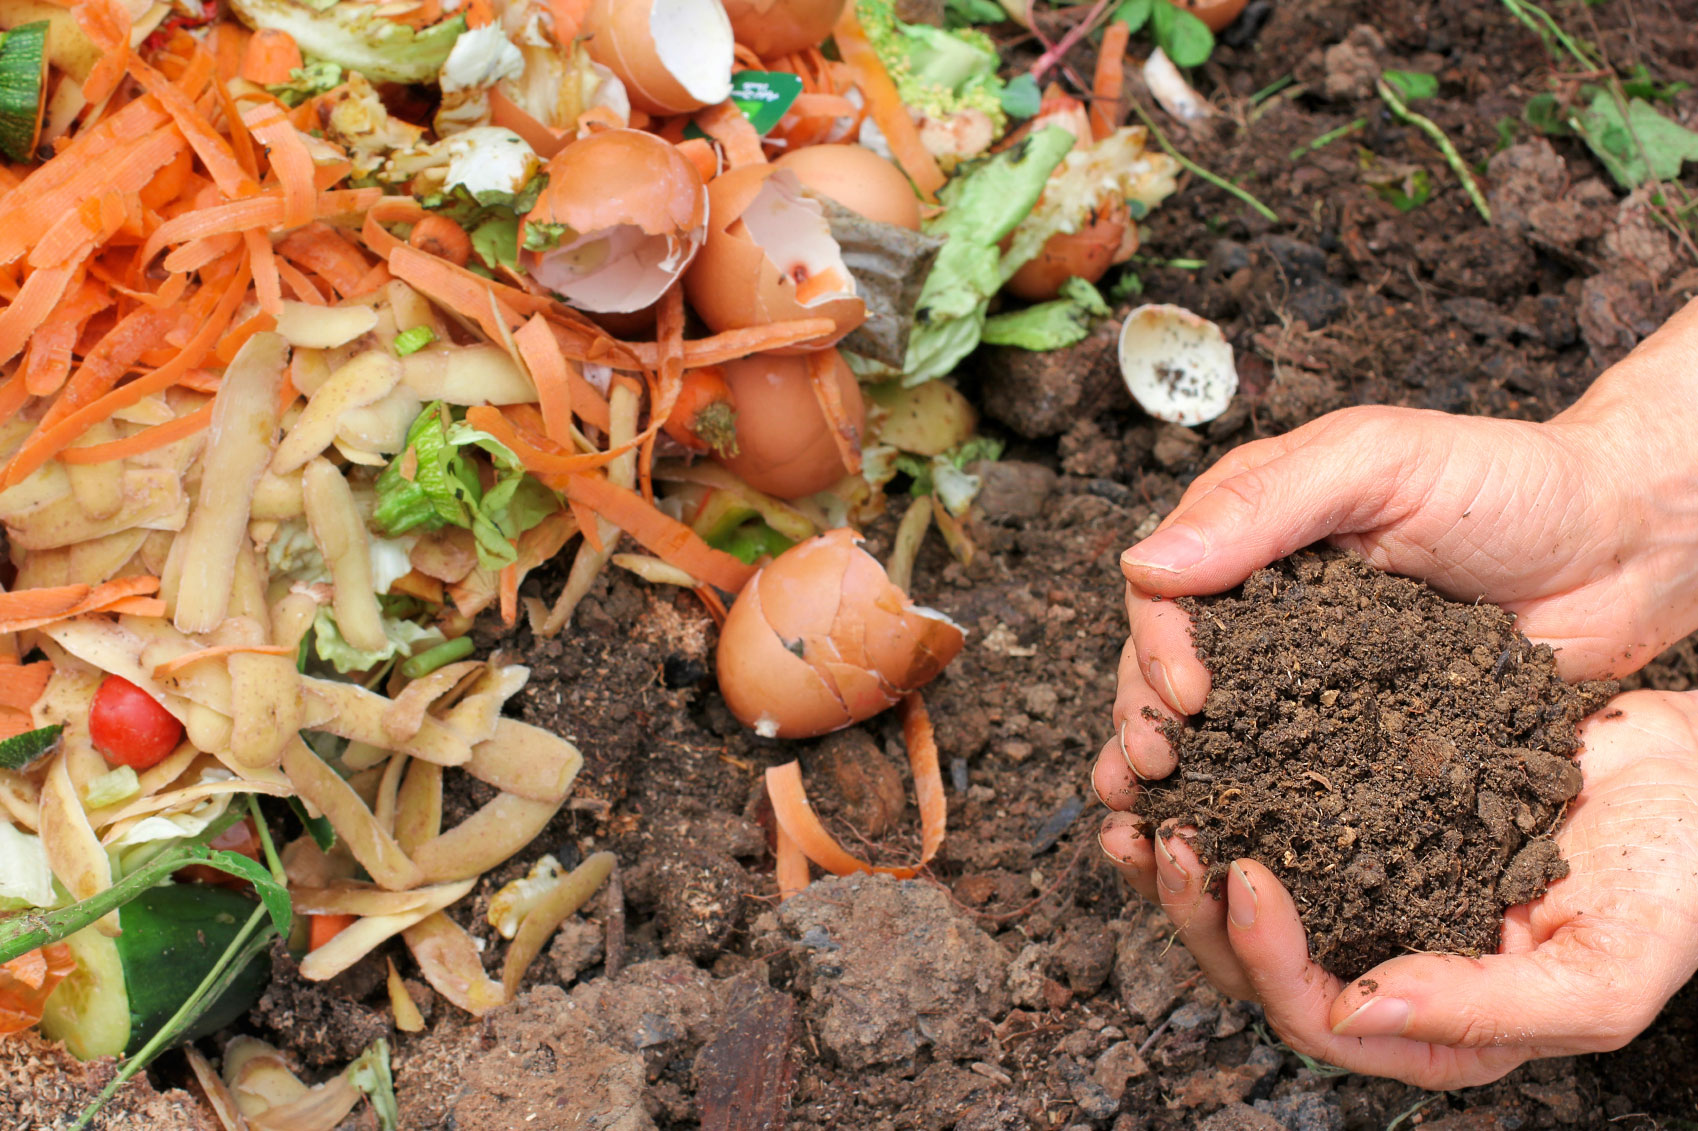 Pile of compostable food scraps